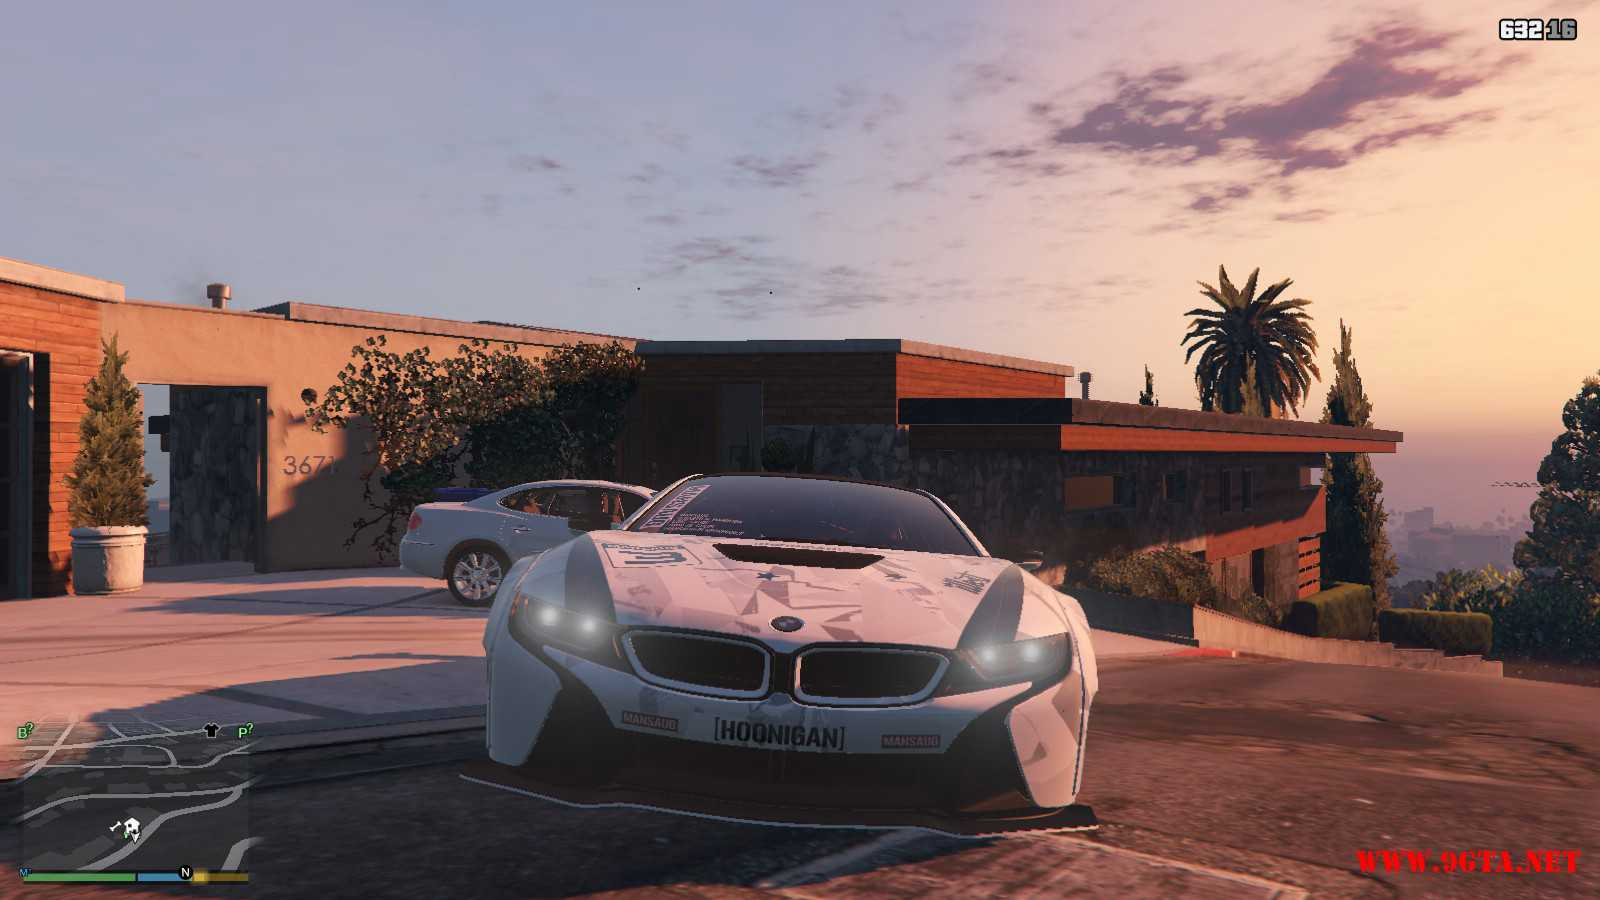 BMW I8 GTA5 Mods (13)